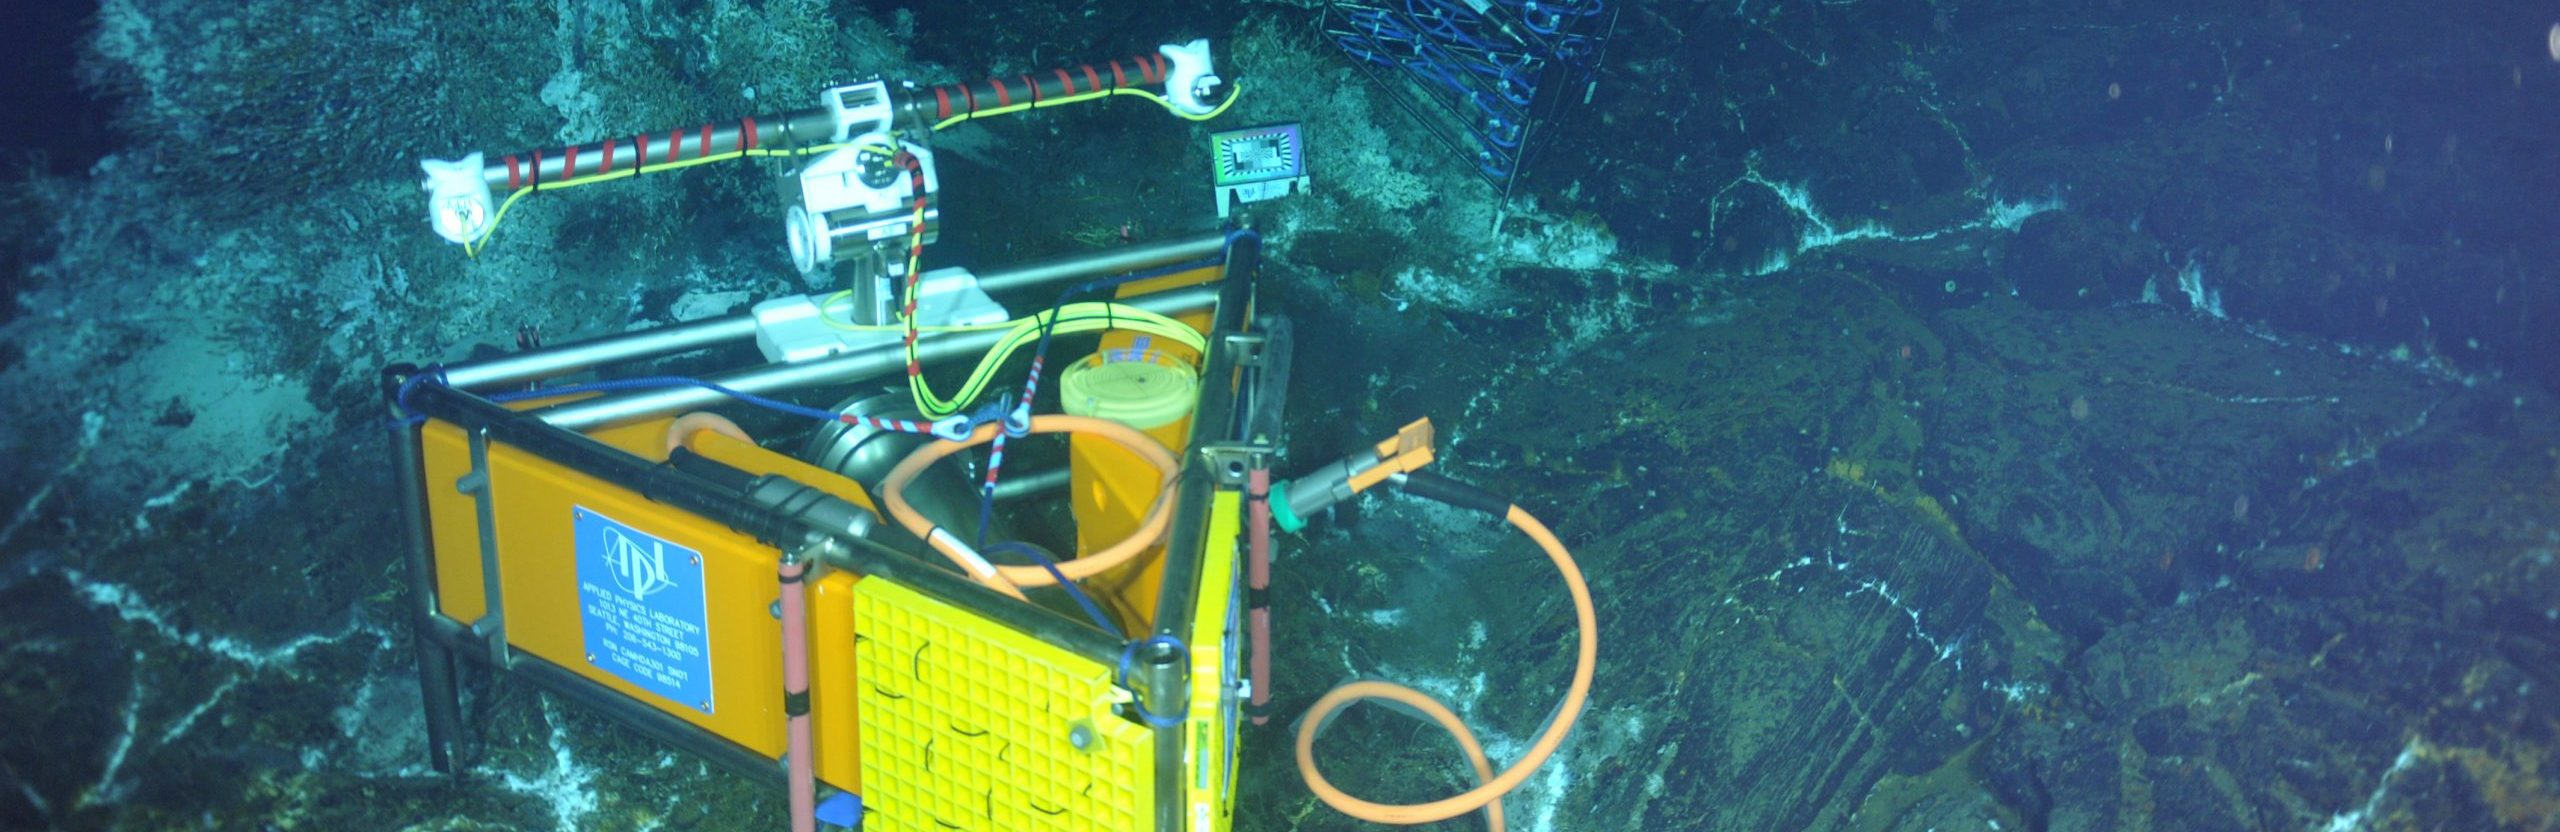 An ODI hybrid wet-mate connector provides > 1 Gbs video transmission capabilities and power to the RSN-OOI-NSF high definition camera that was deployed during the VISIONS'13 Expedition. The wetmate connectors allow an ROV to connect and disconnect infrastructure underwater without having to recover the equipment. The camera shown here is at a water depth of ~ 5000 ft at the summit of Axial Seamount.